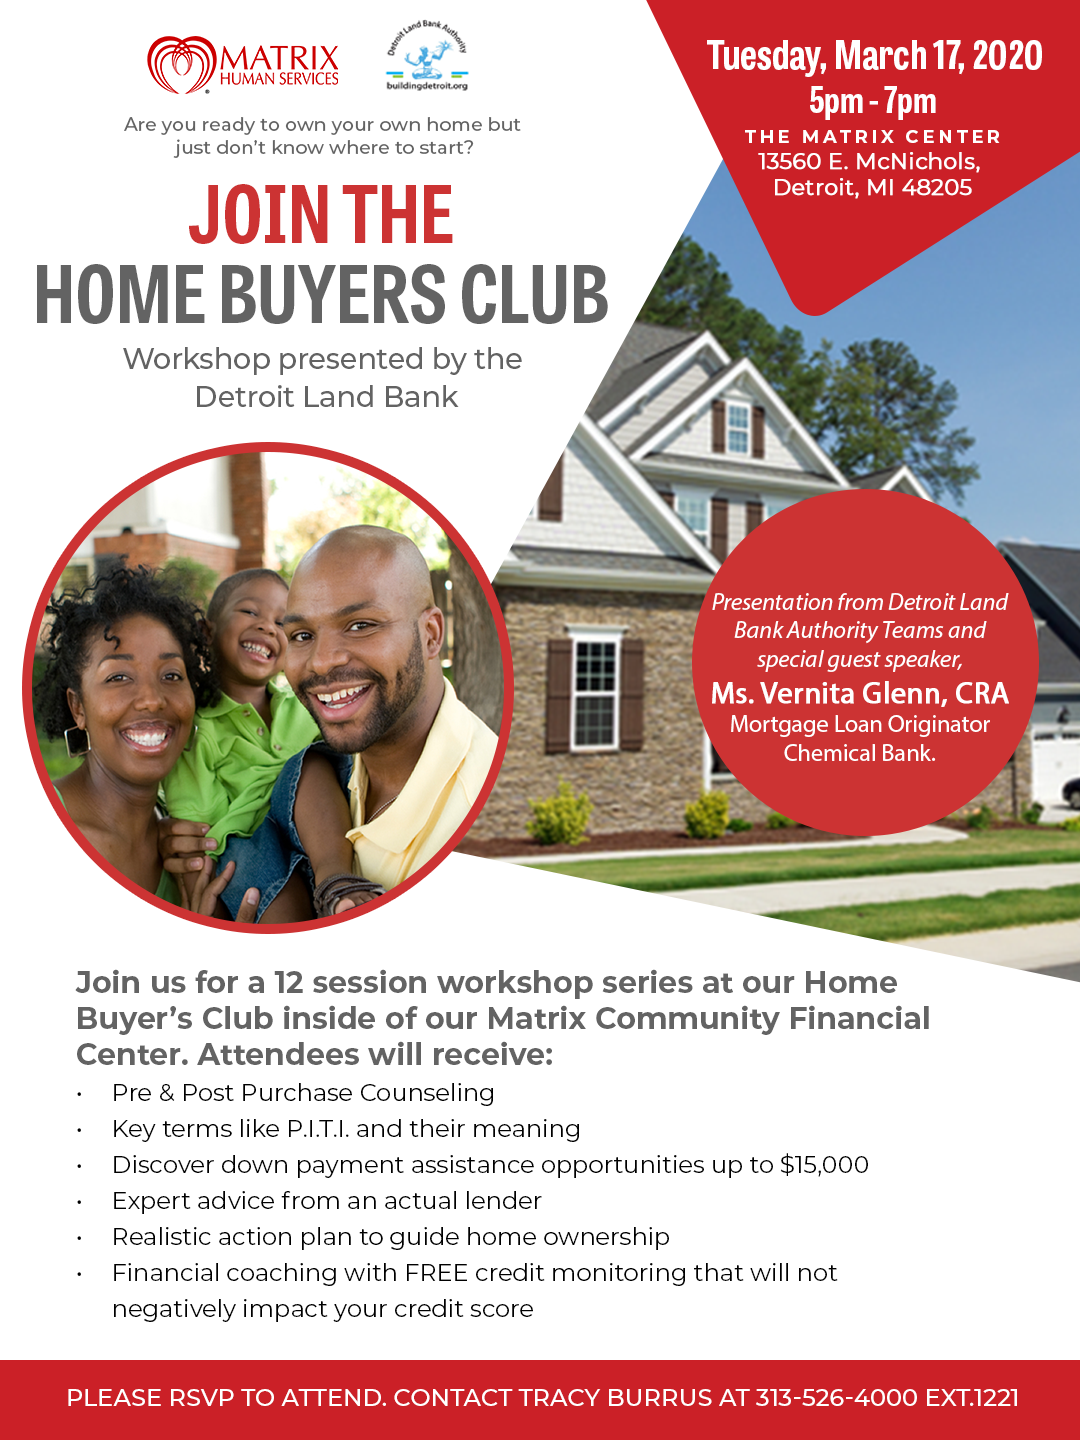 Home Buyer Club flyer